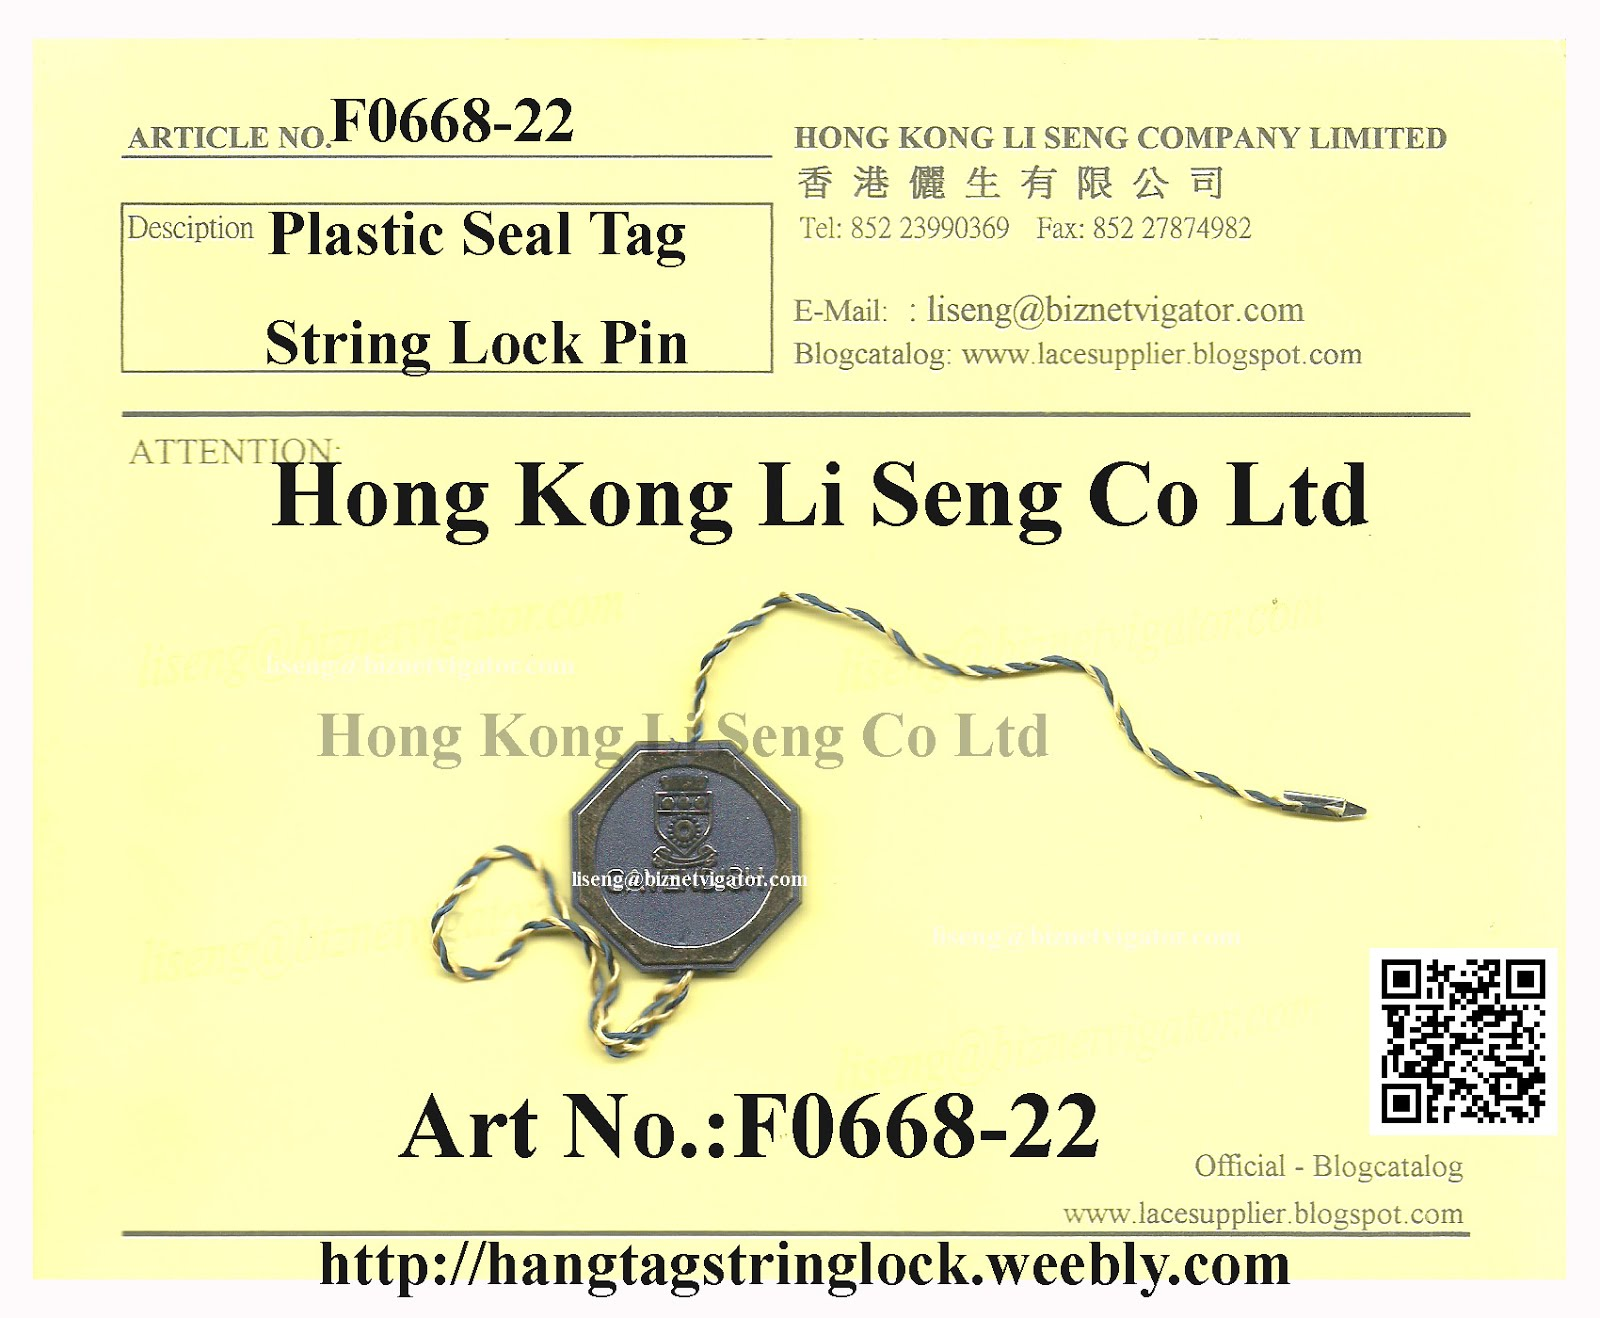 SPECIAL HEXAGONAL PLASTIC SEAL TAG METAL PIN